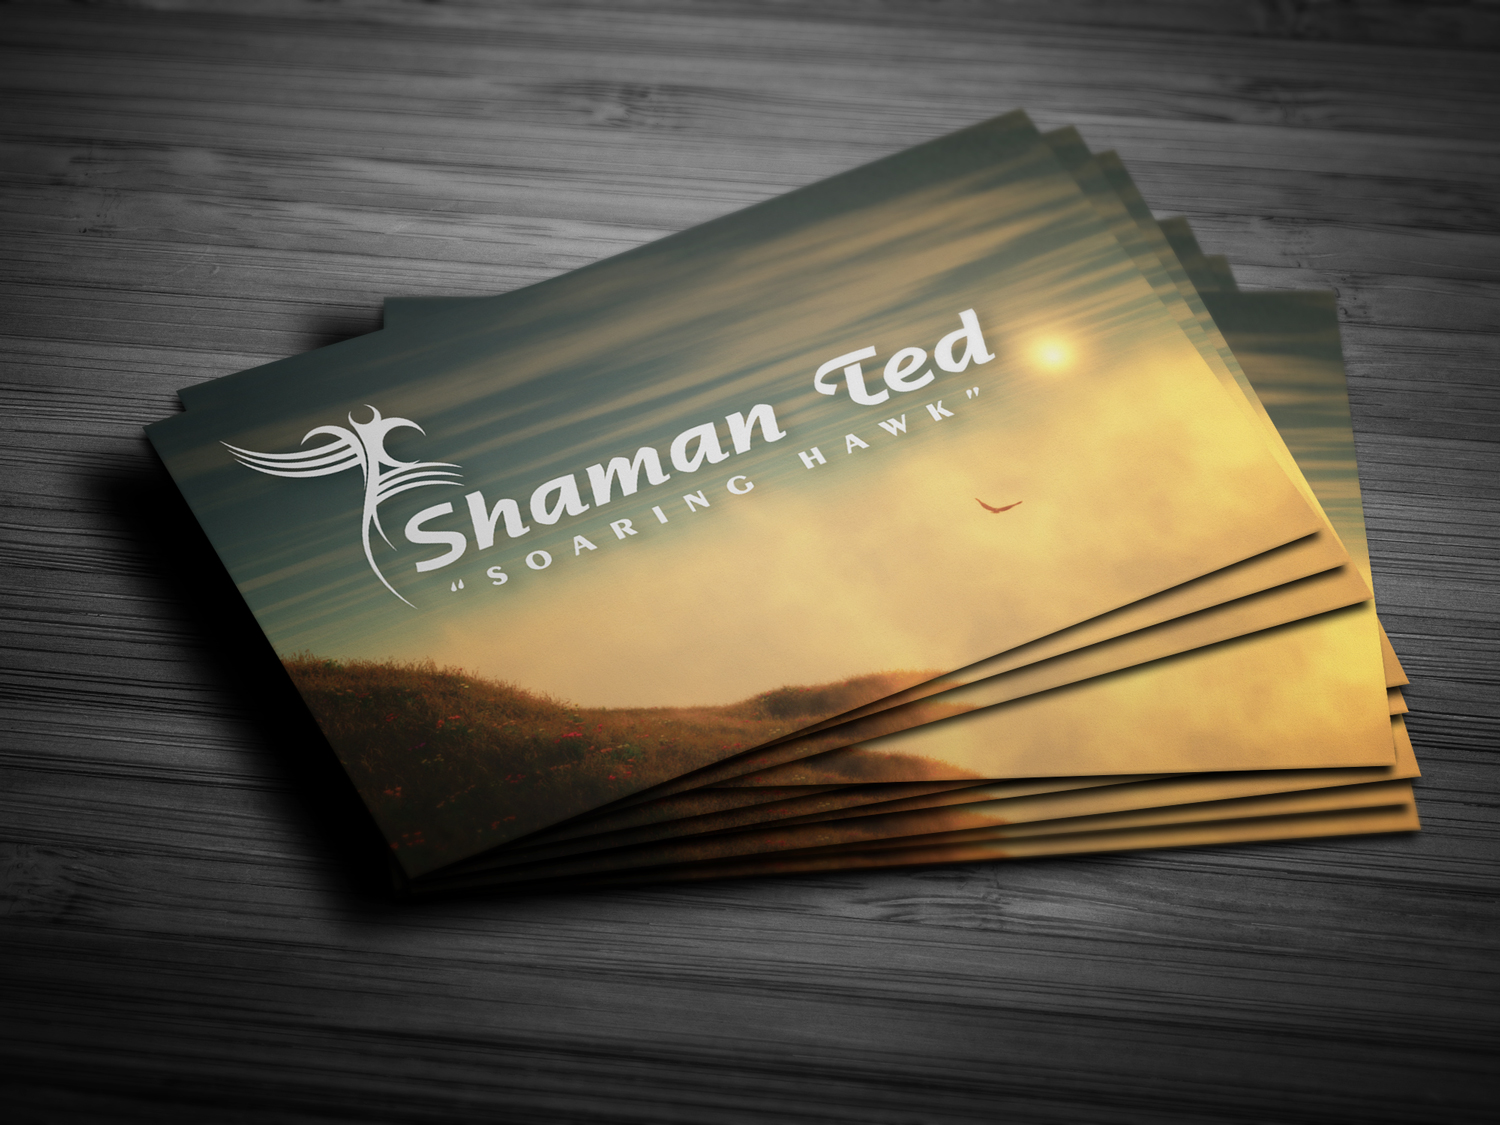 Shaman Ted Business Card | Website Developement, Graphic Design ...